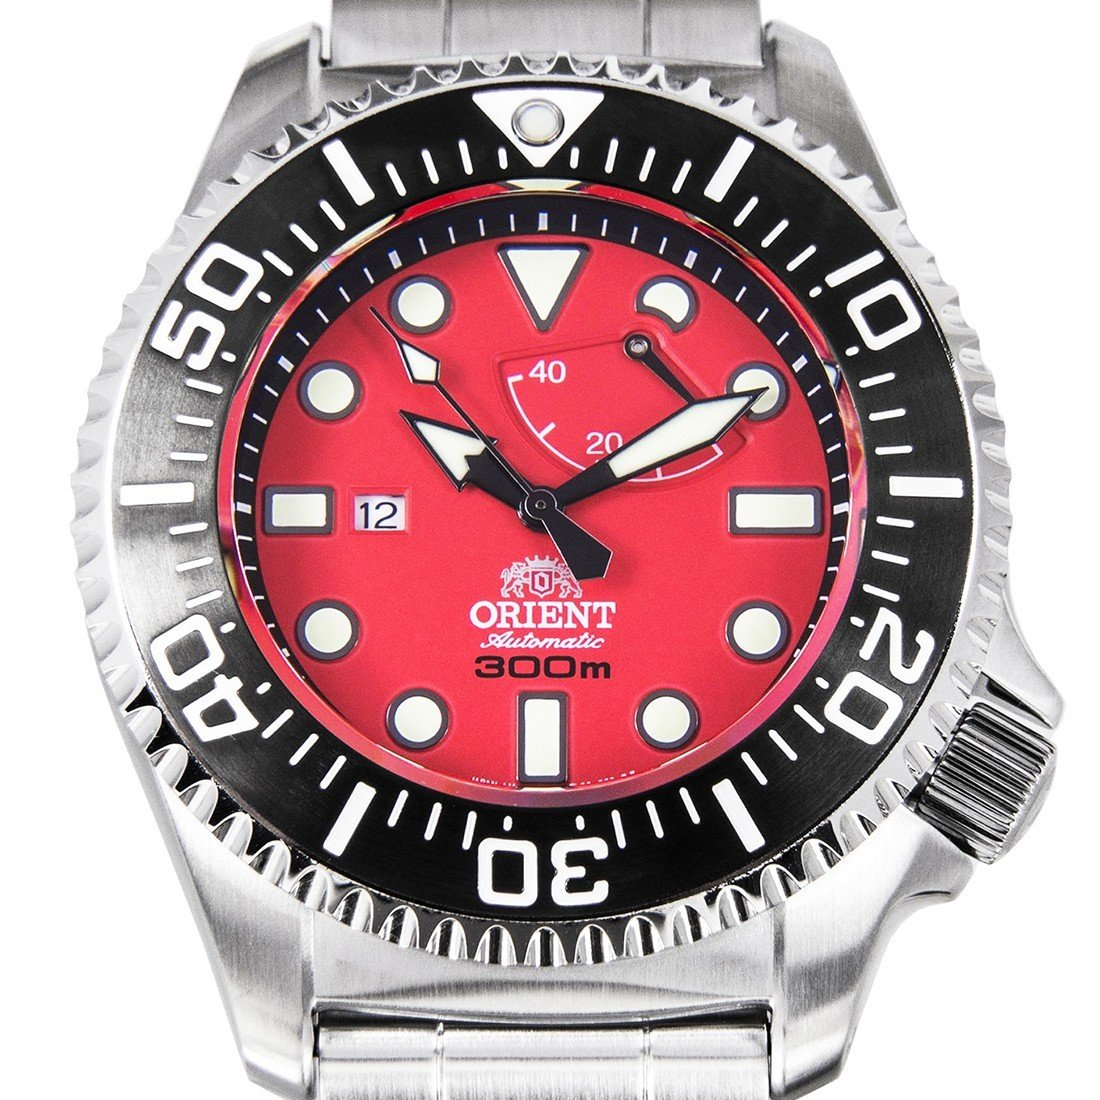 Reloj ORIENT PROFESSIONAL DIVERS SEL02003H 300M PRO SATURATION cristal zafiro POWER RESERVE